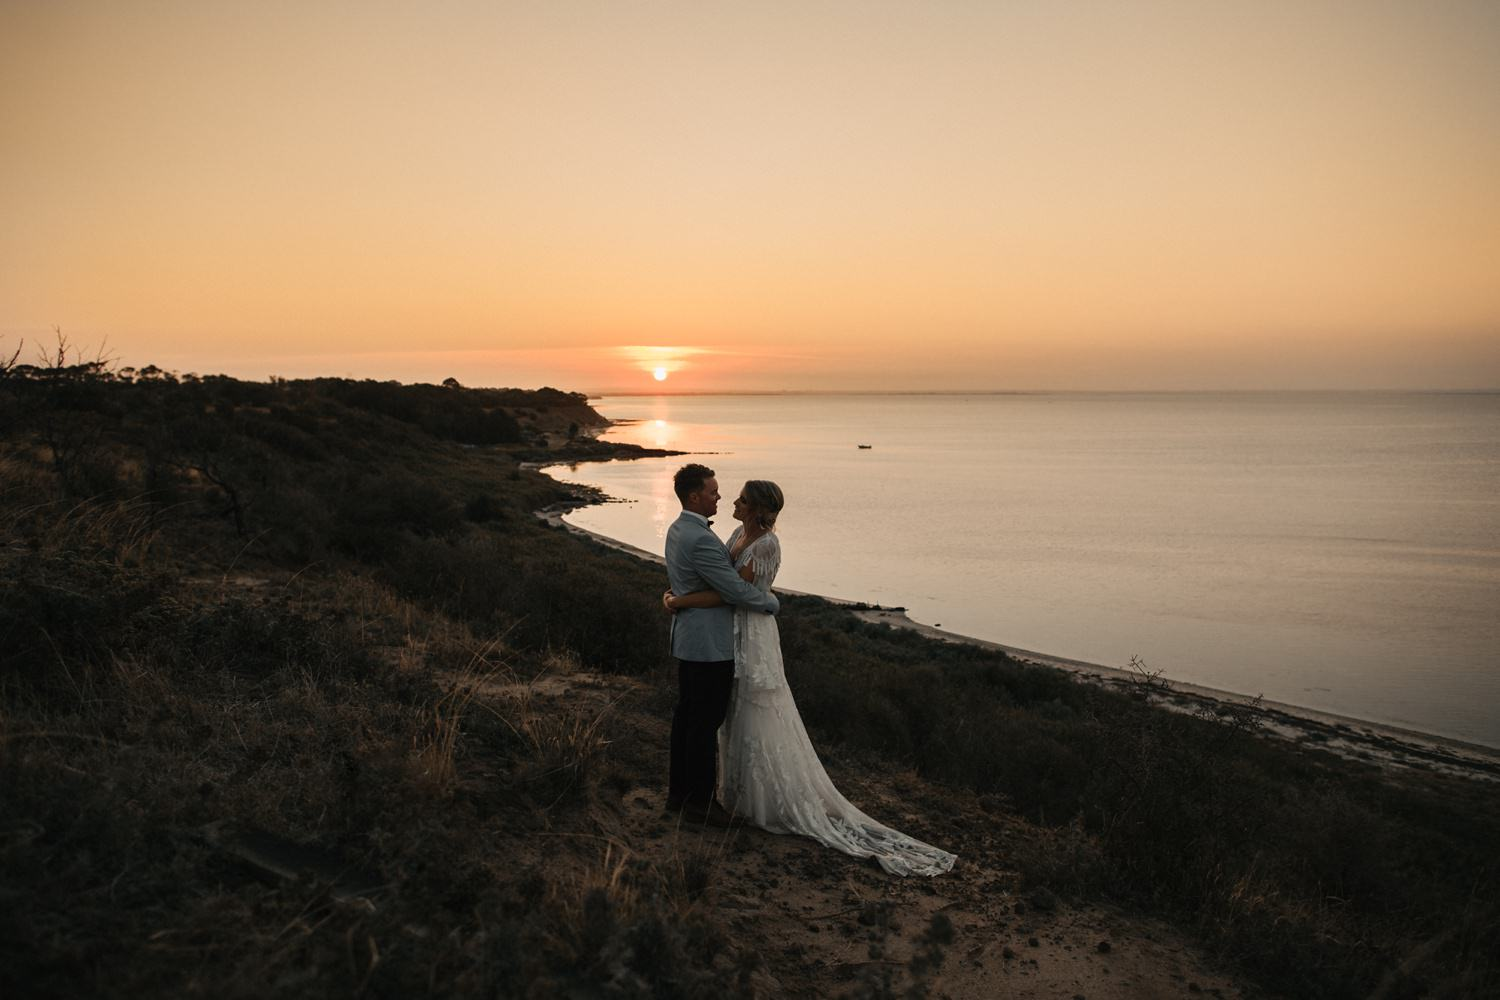 relaxed-wedding-photographer-melbourne-bellarine-peninsula-baie-winery_0113.jpg